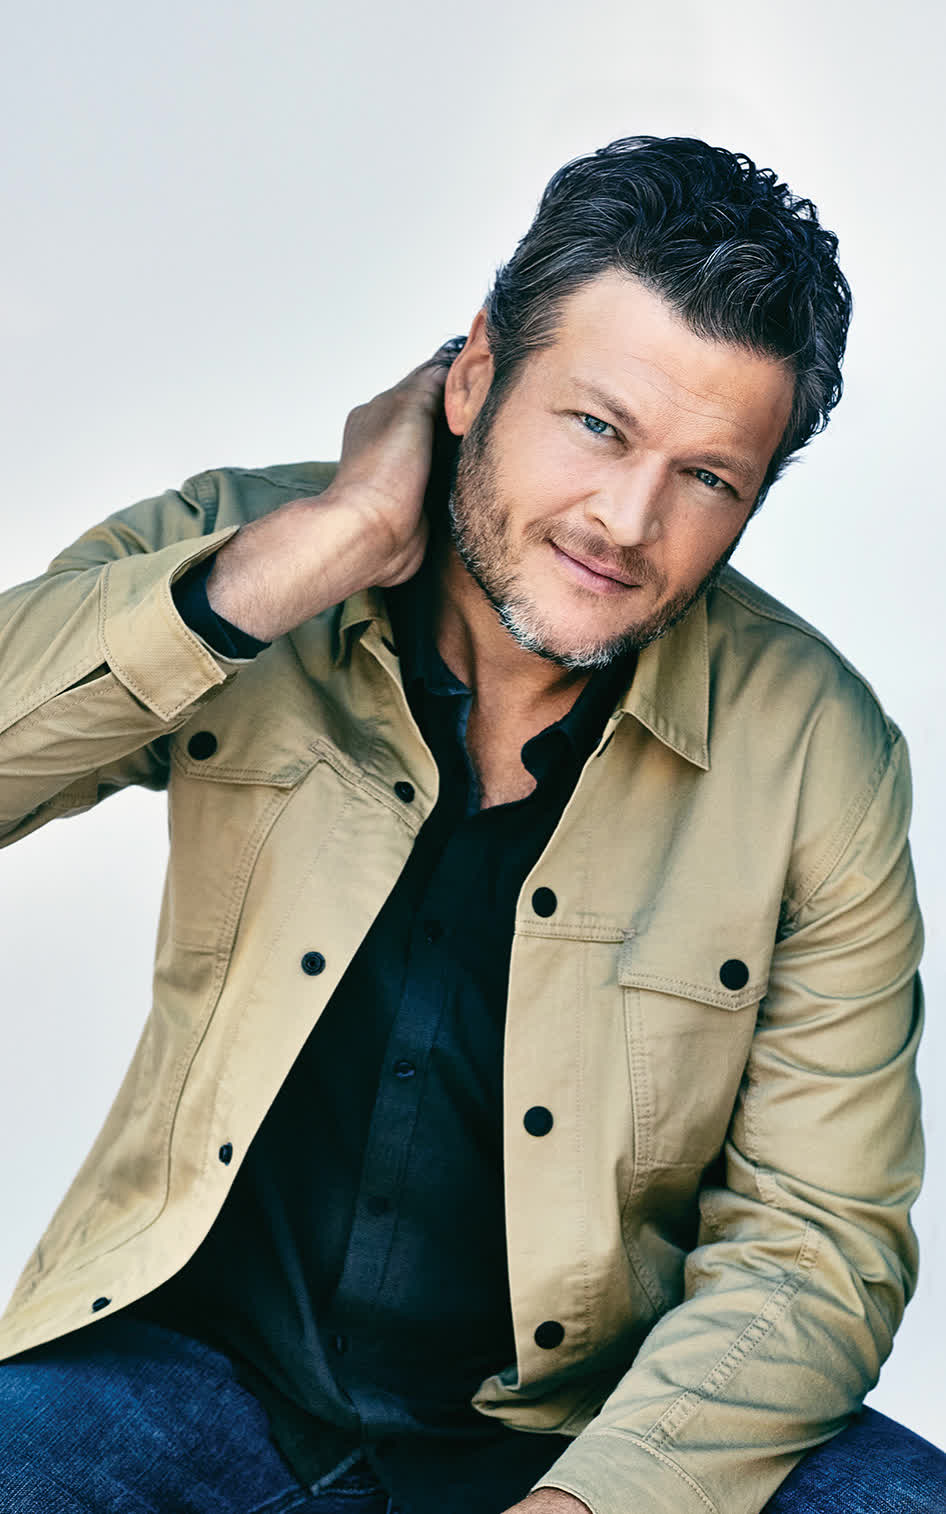 Blake Shelton - Bio, Age, Height, Weight, Net Worth, Facts